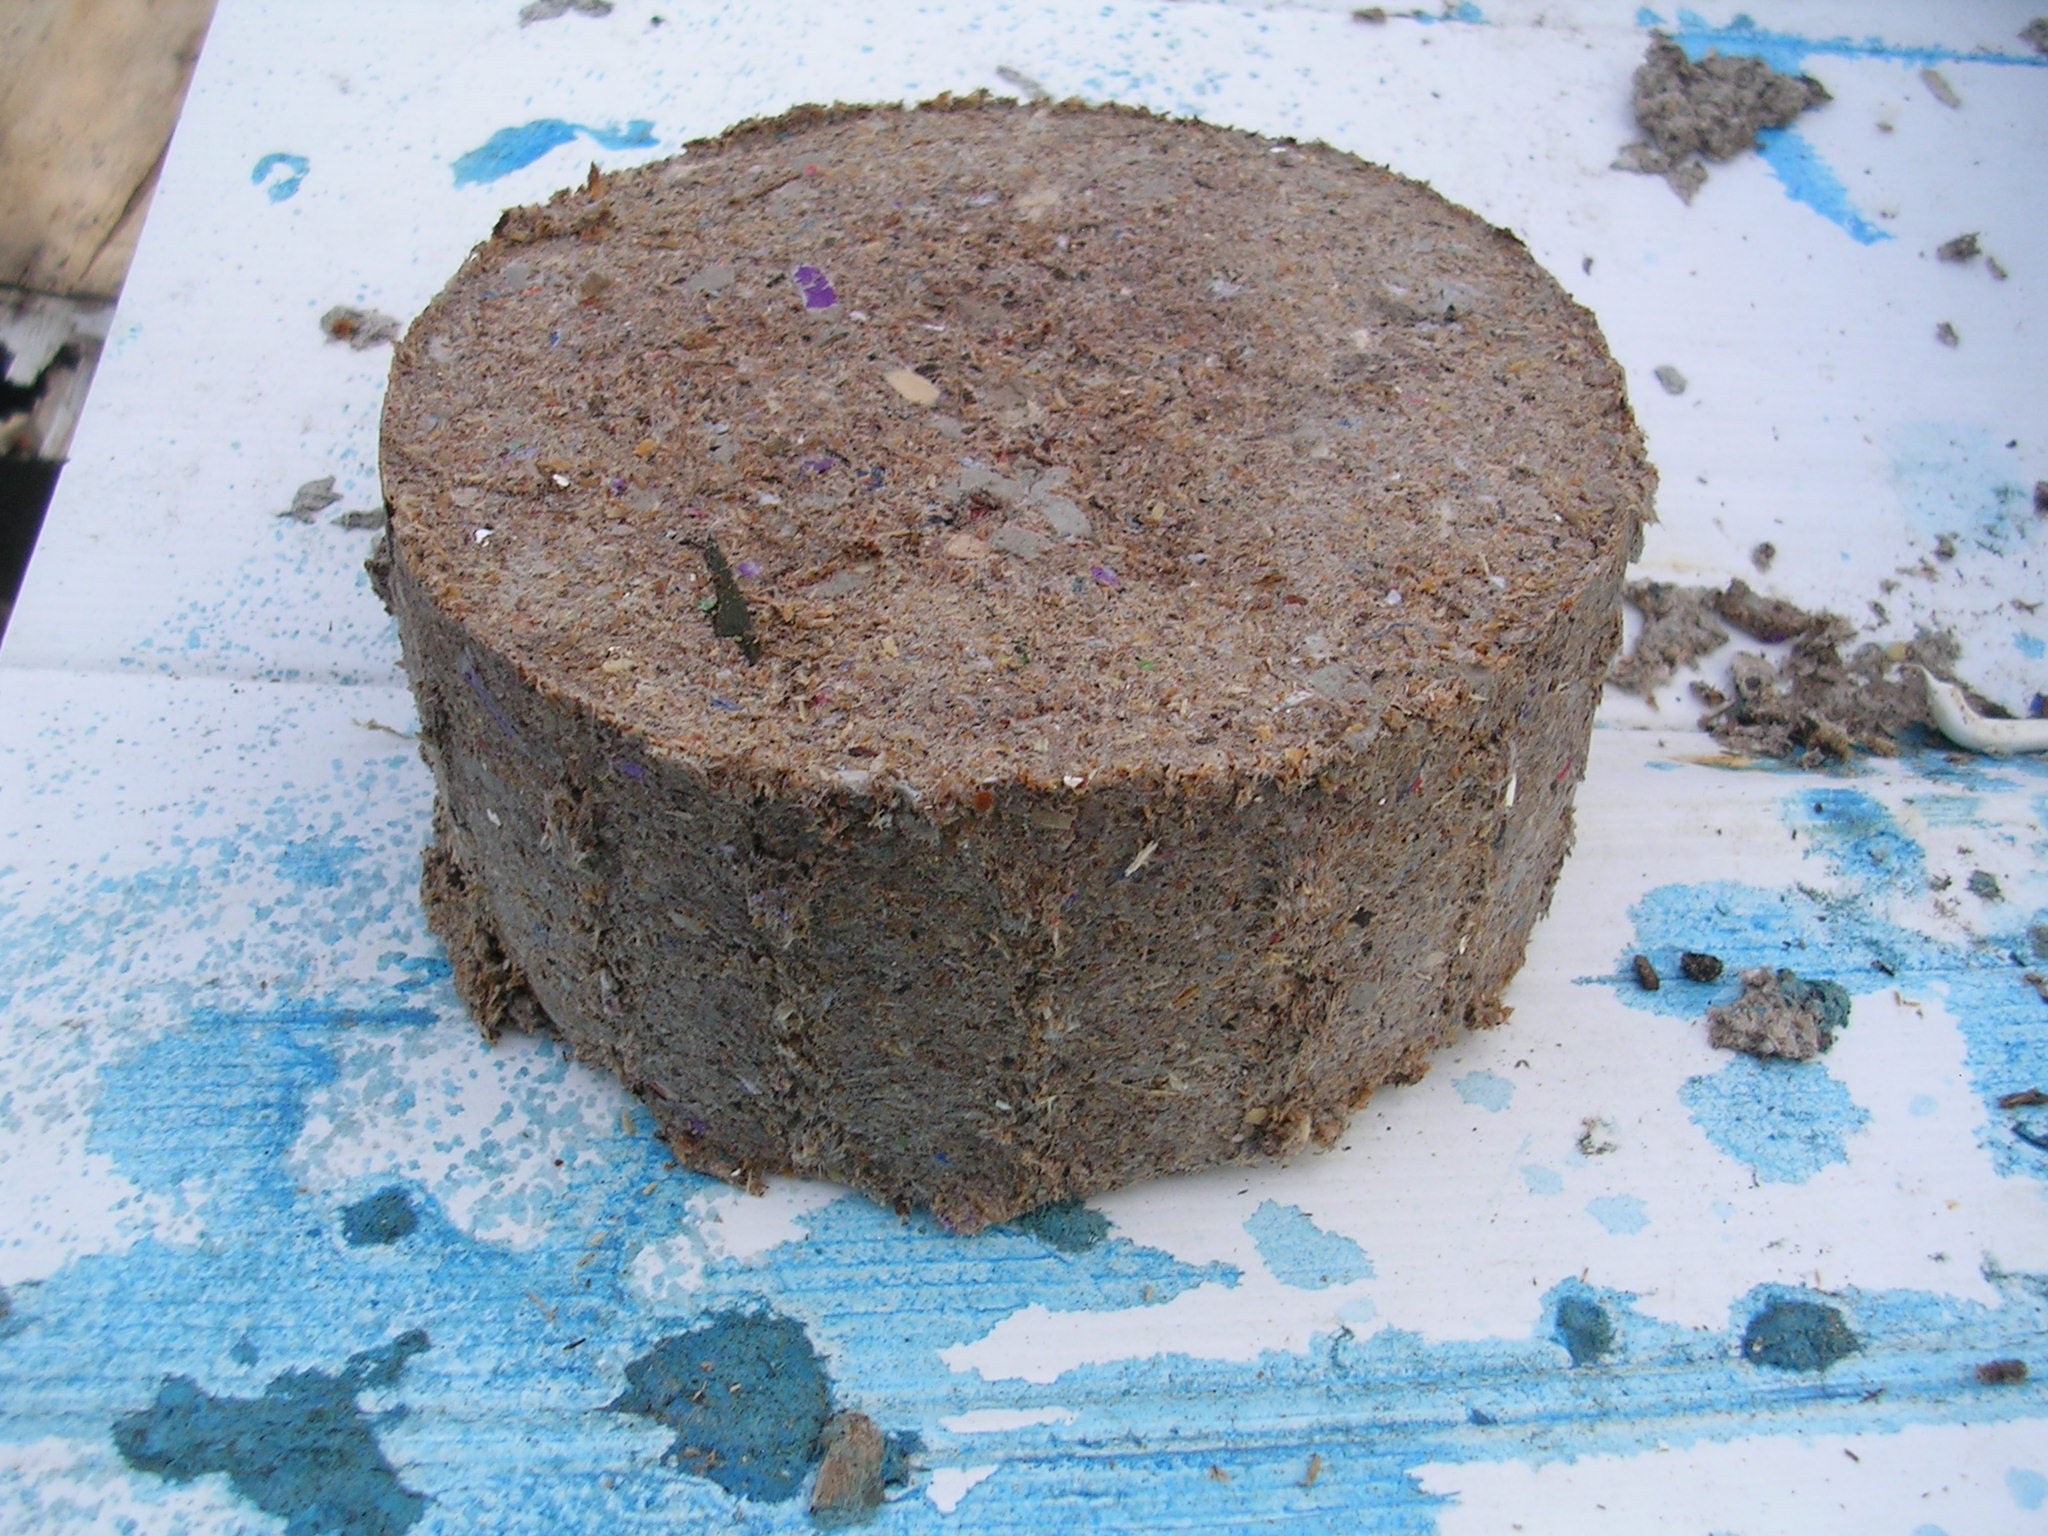 Bio fuel briquettes, compress paper pulp and sawdust into fuel bricks.